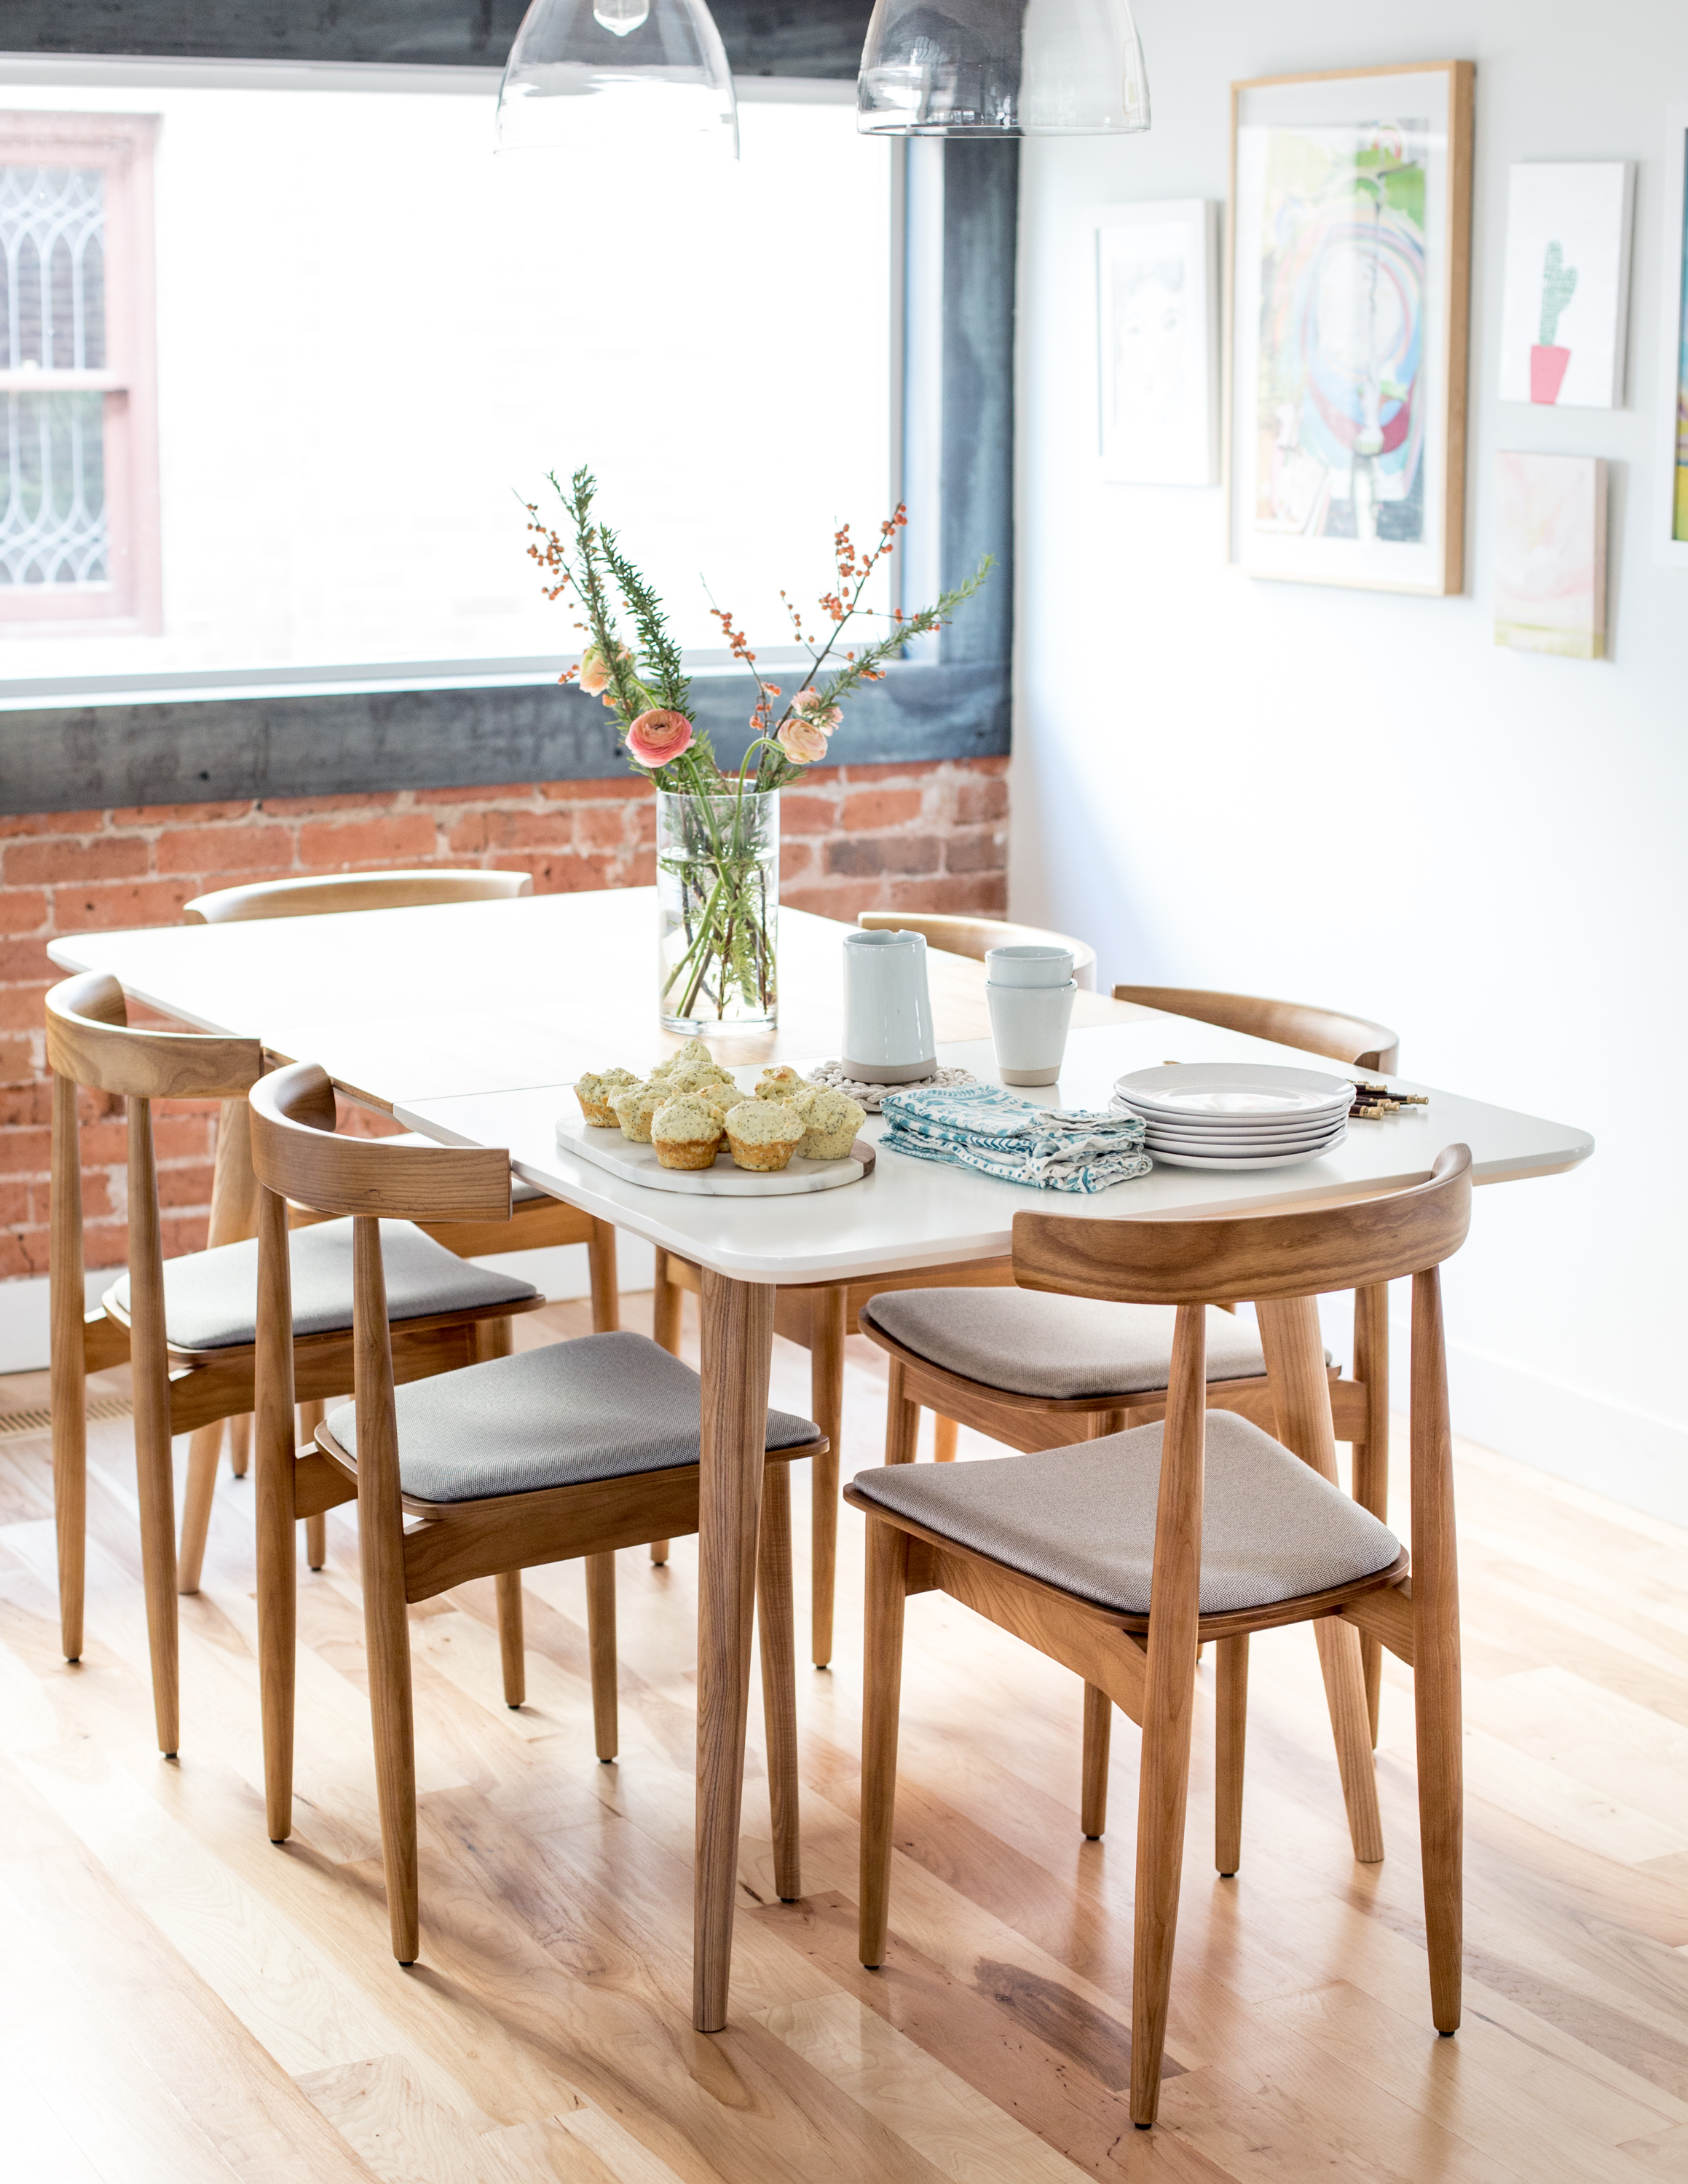 Mid century modern dining table and chairs have